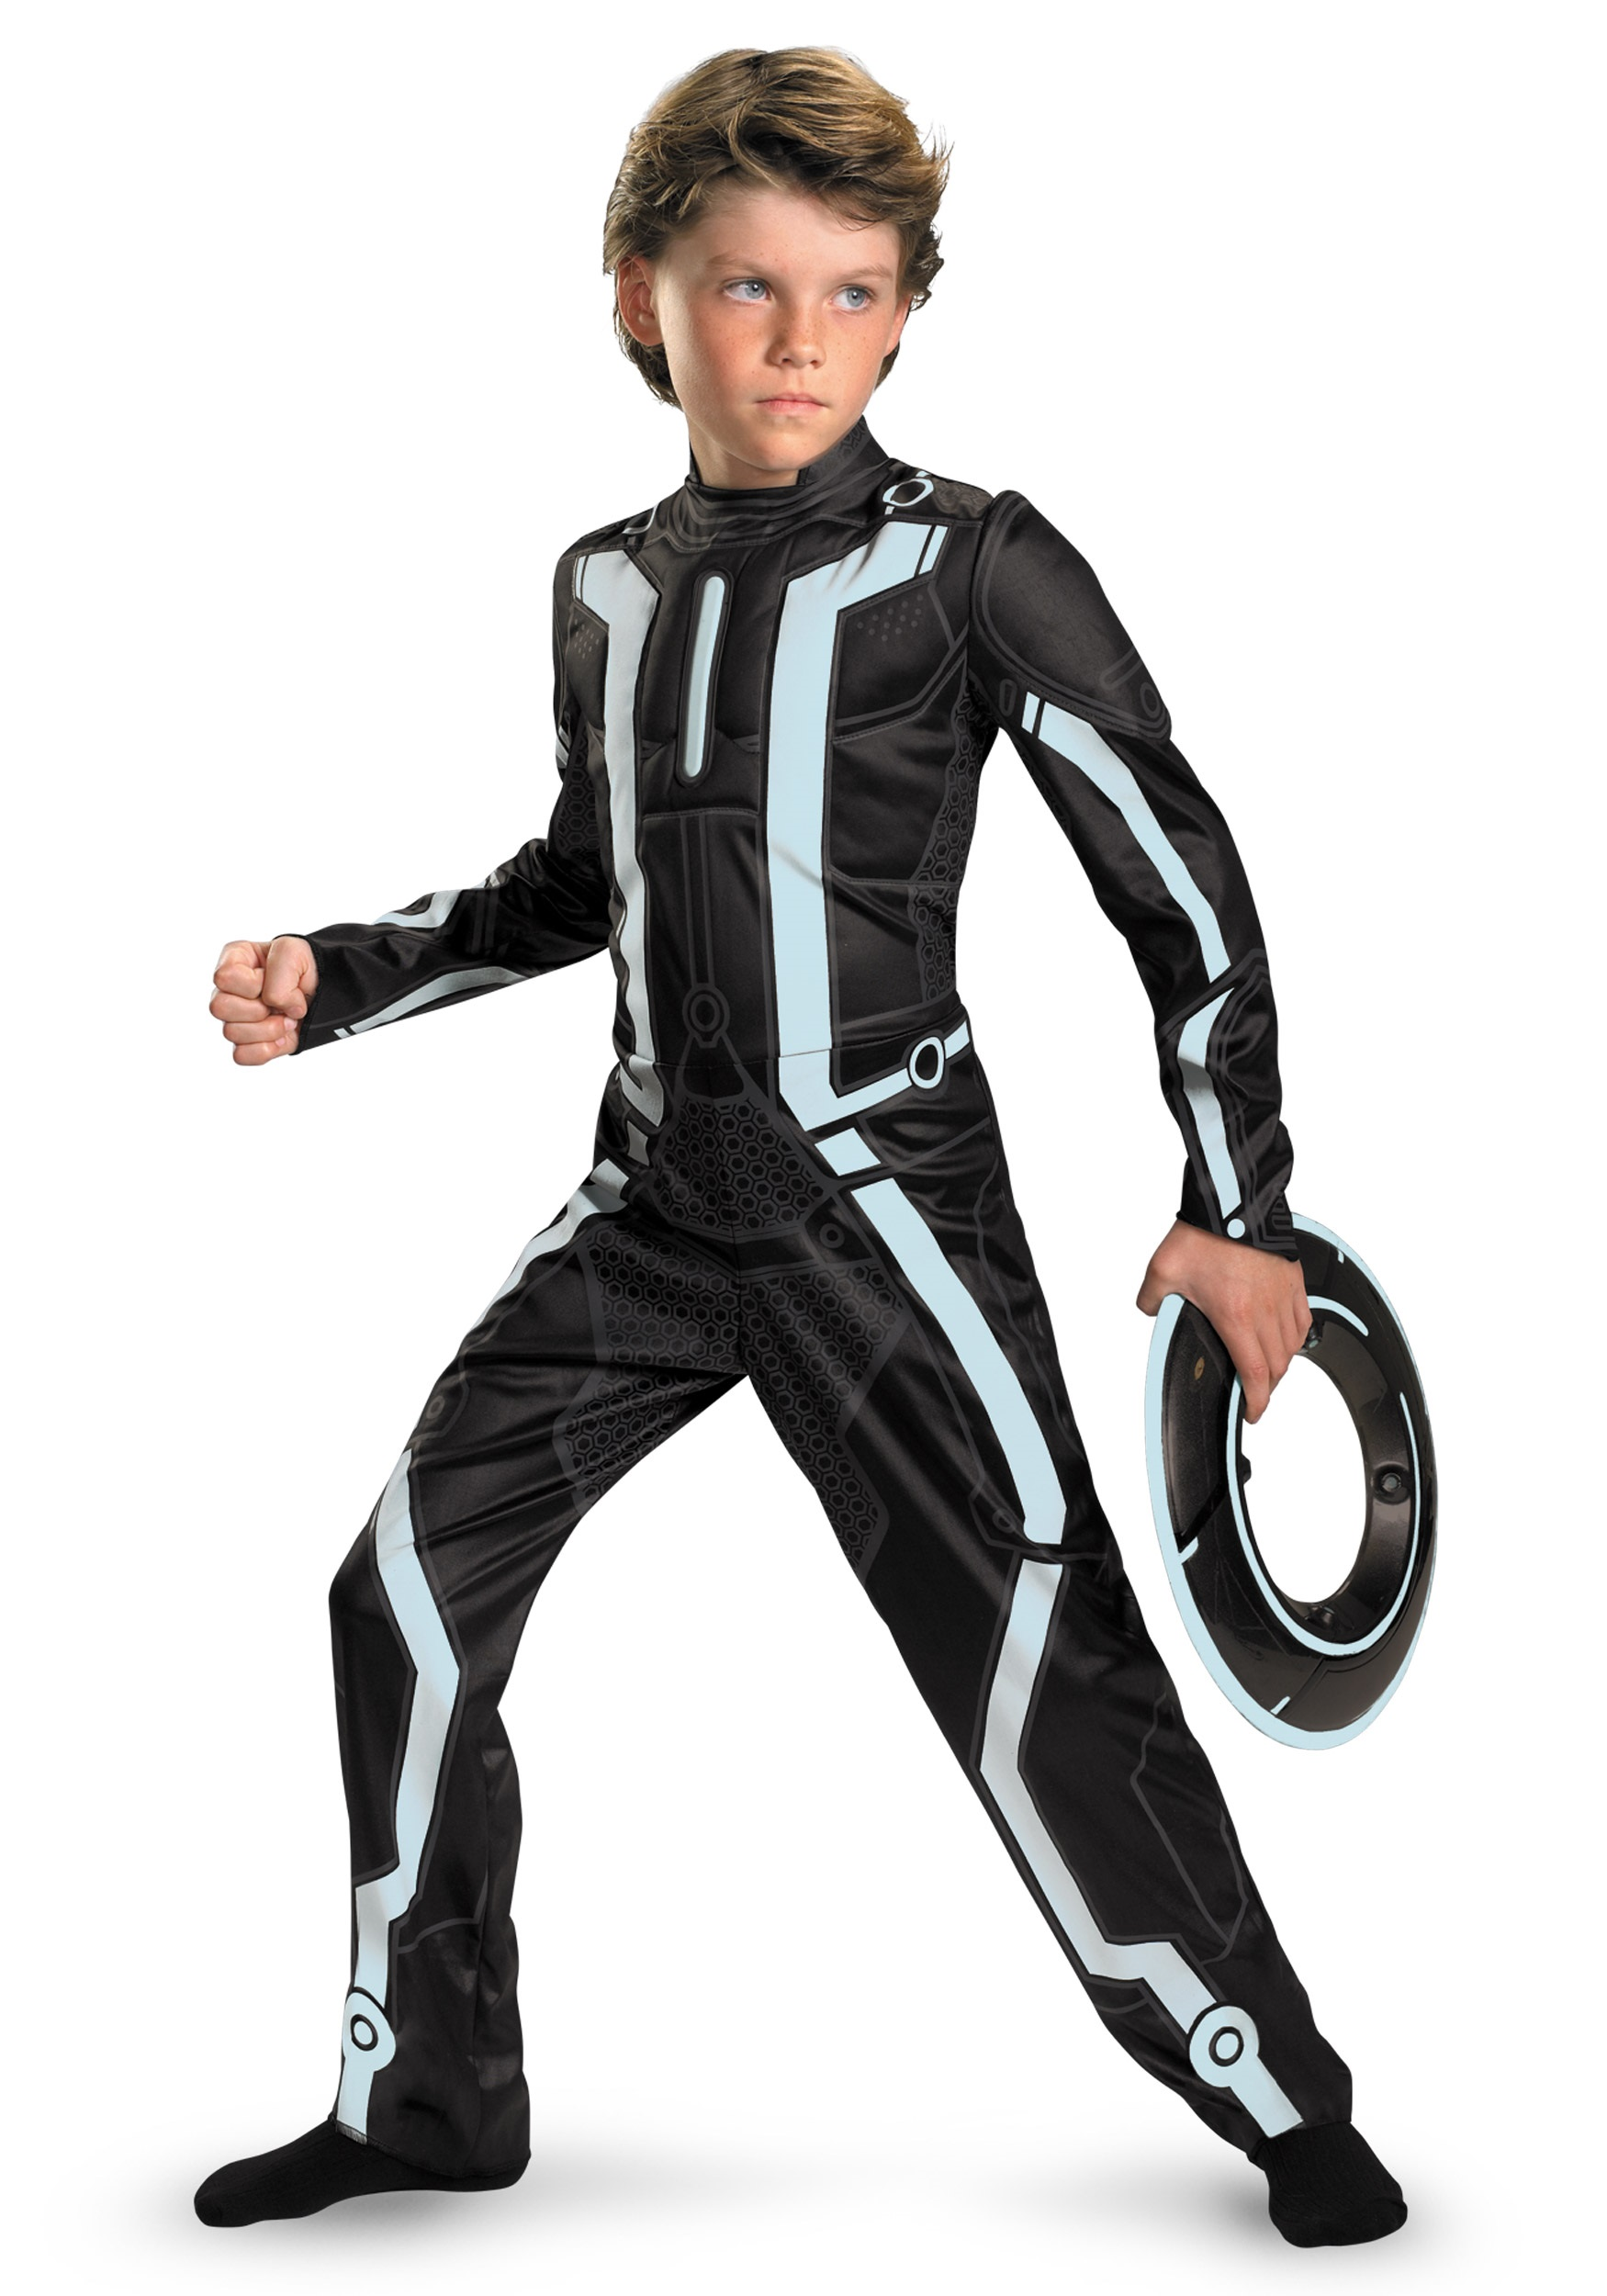 Kids Deluxe Tron Costume  sc 1 st  Halloween Costumes : shadow costume for kids  - Germanpascual.Com